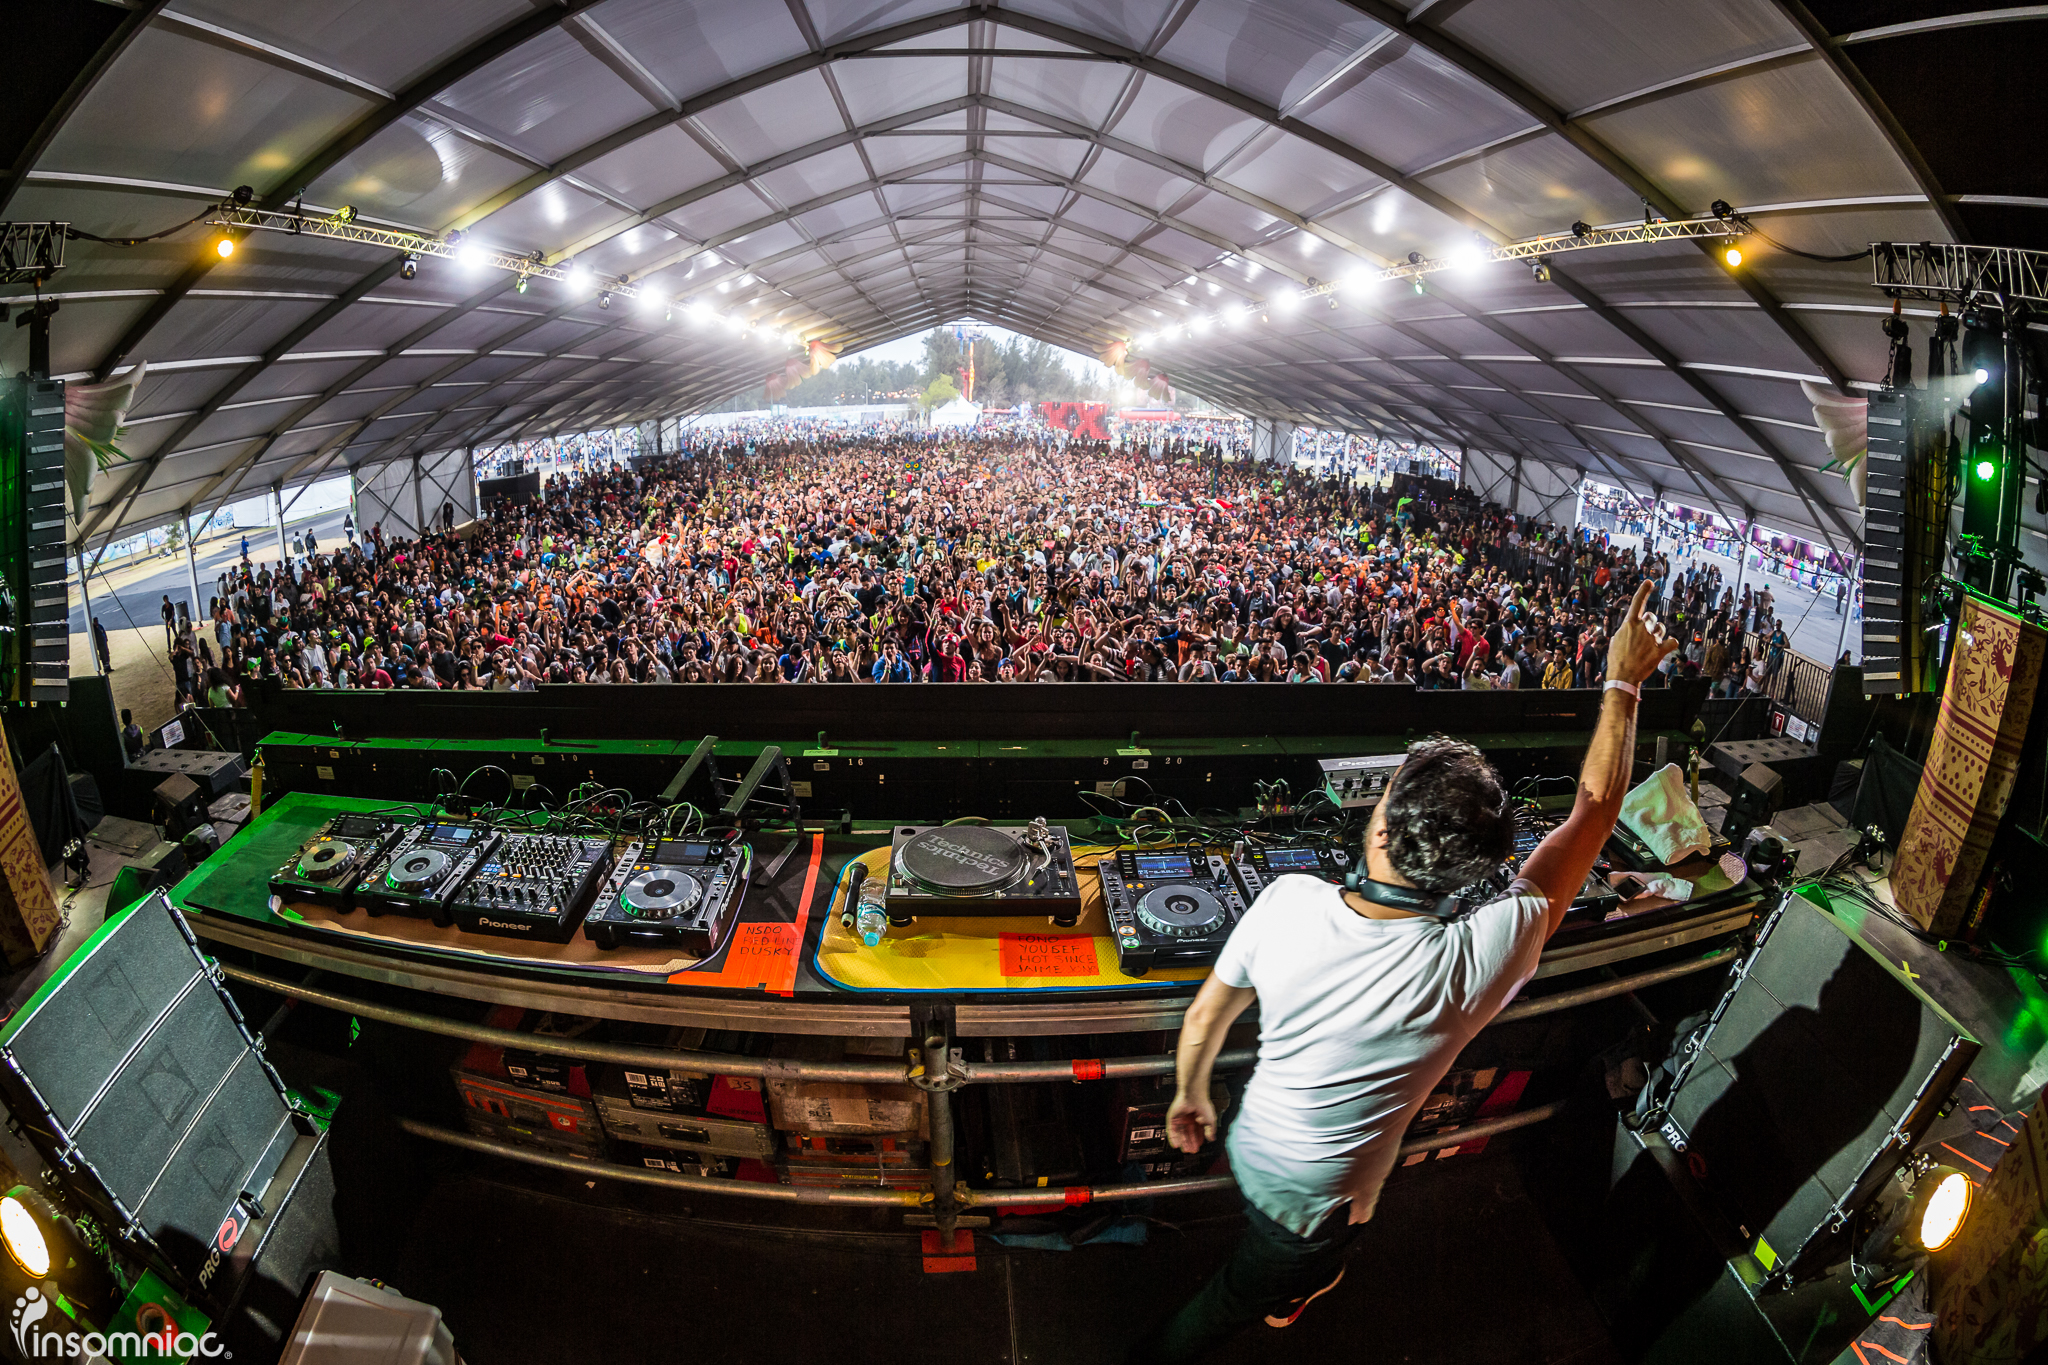 edcmx_2016_iwally_alivecoverage-8.jpg